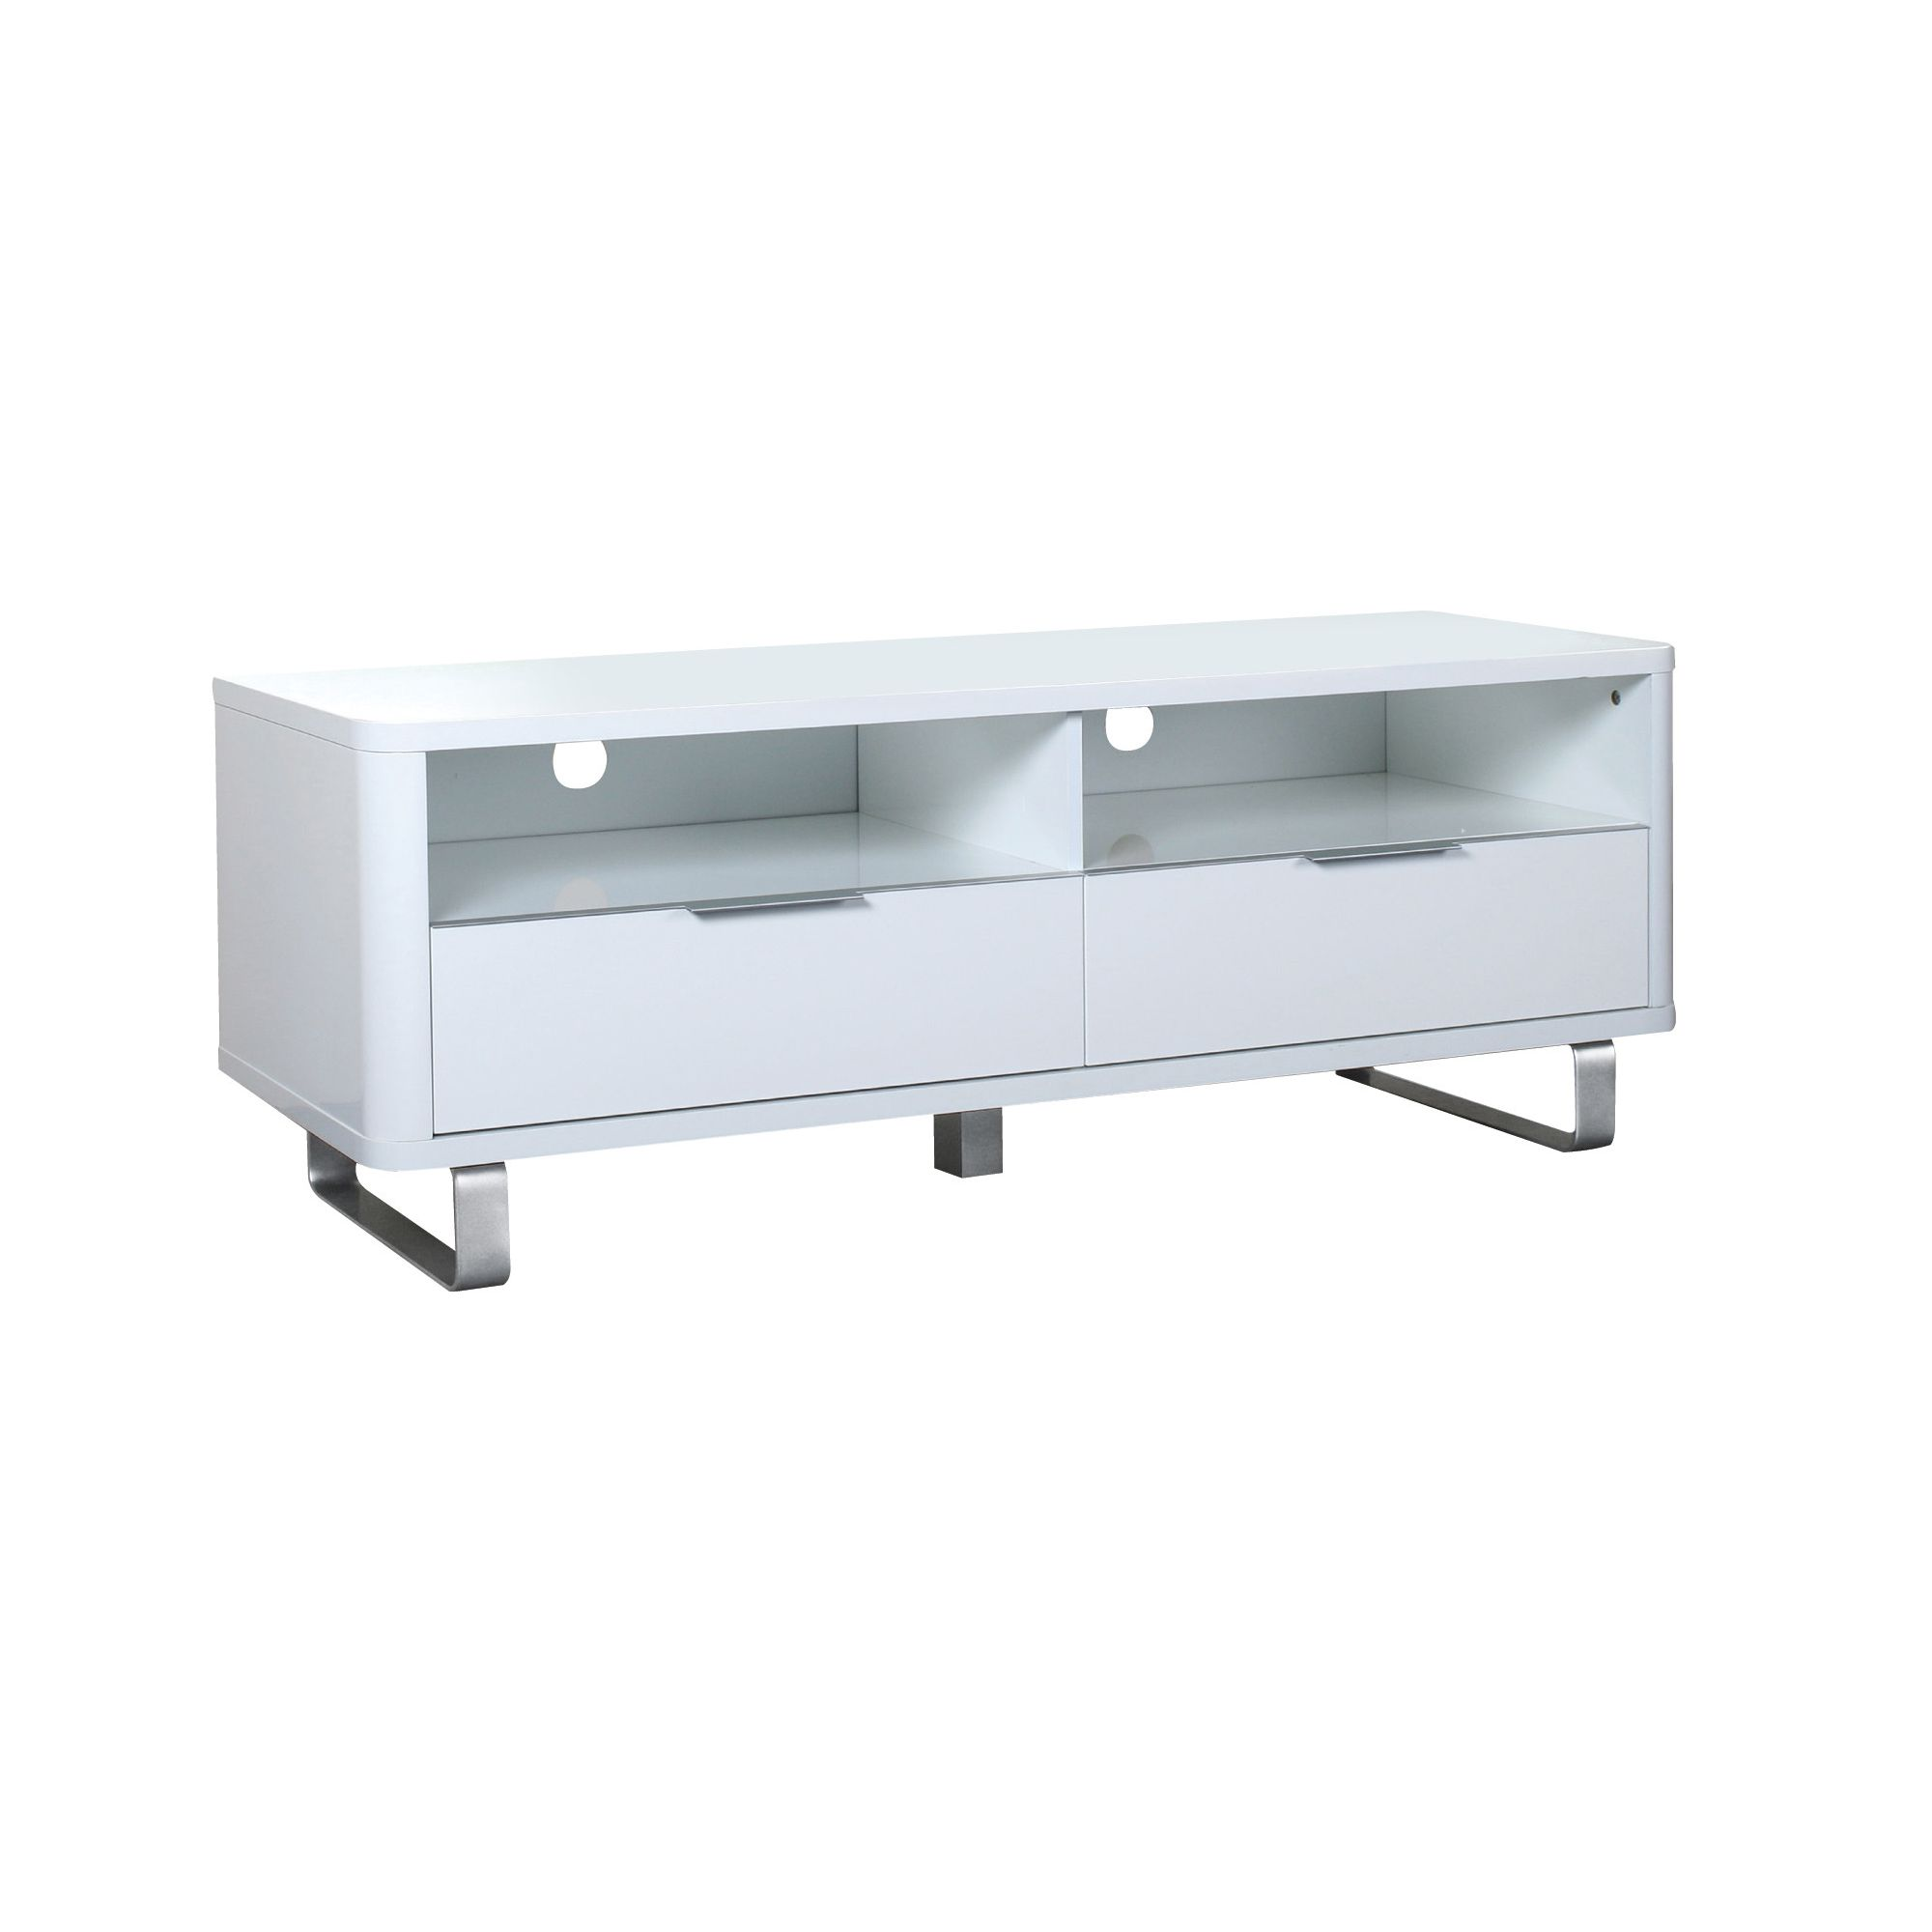 Home Zone Occasional Remedy TV Cabinet - White at Tesco Direct